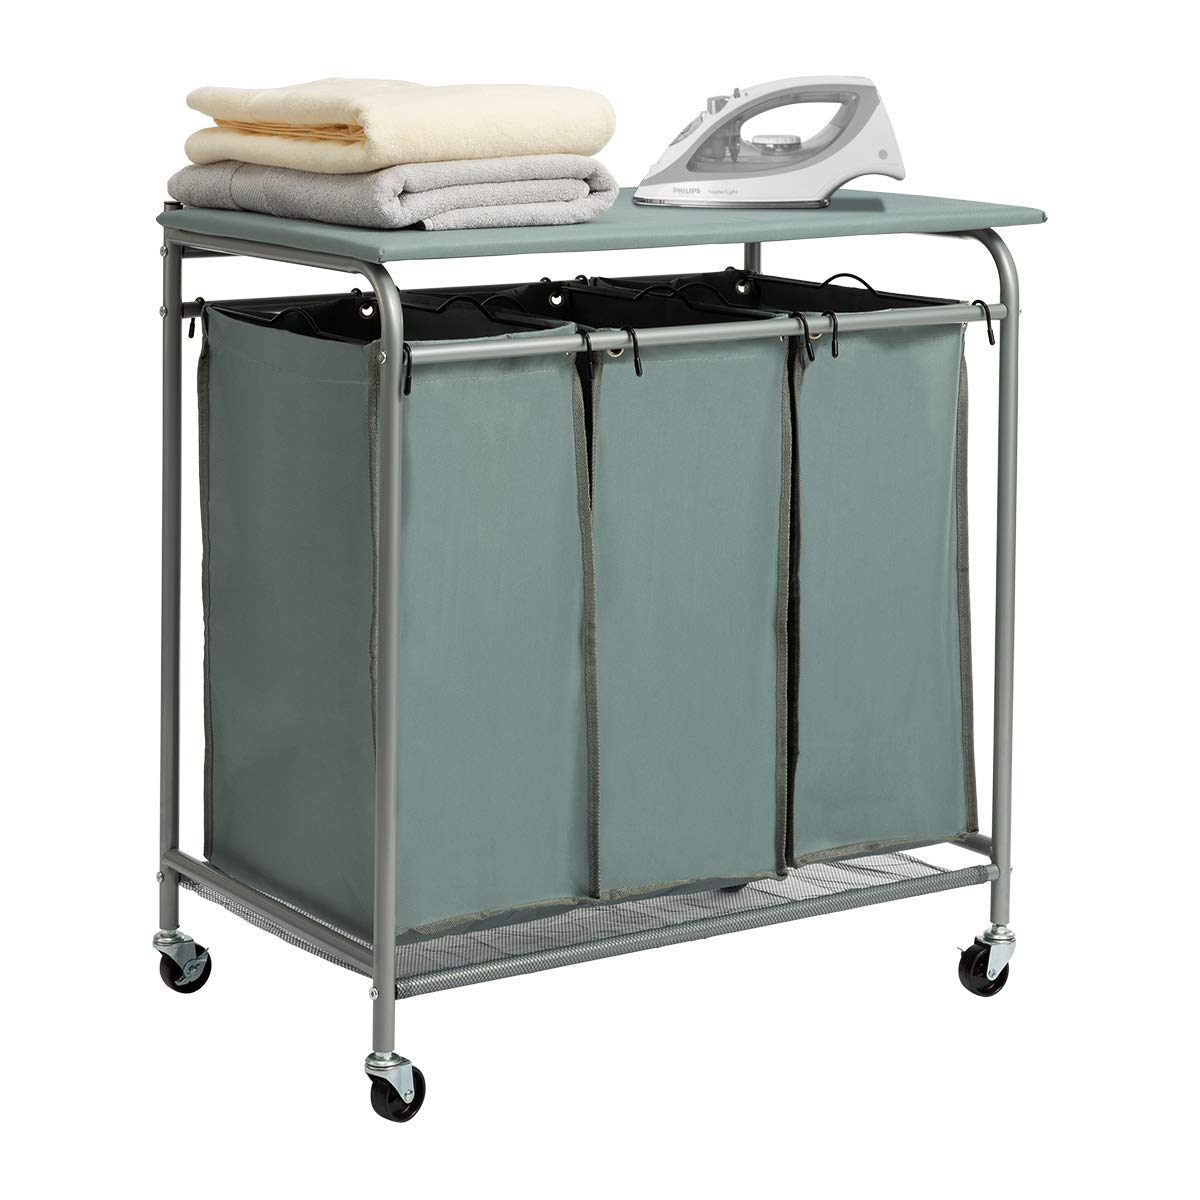 HollyHOME Laundry Sorter Cart with Foldable Ironing Board with Removable 3 Bags Laundry Hamper Sorter Blue Grey - HollyHOME